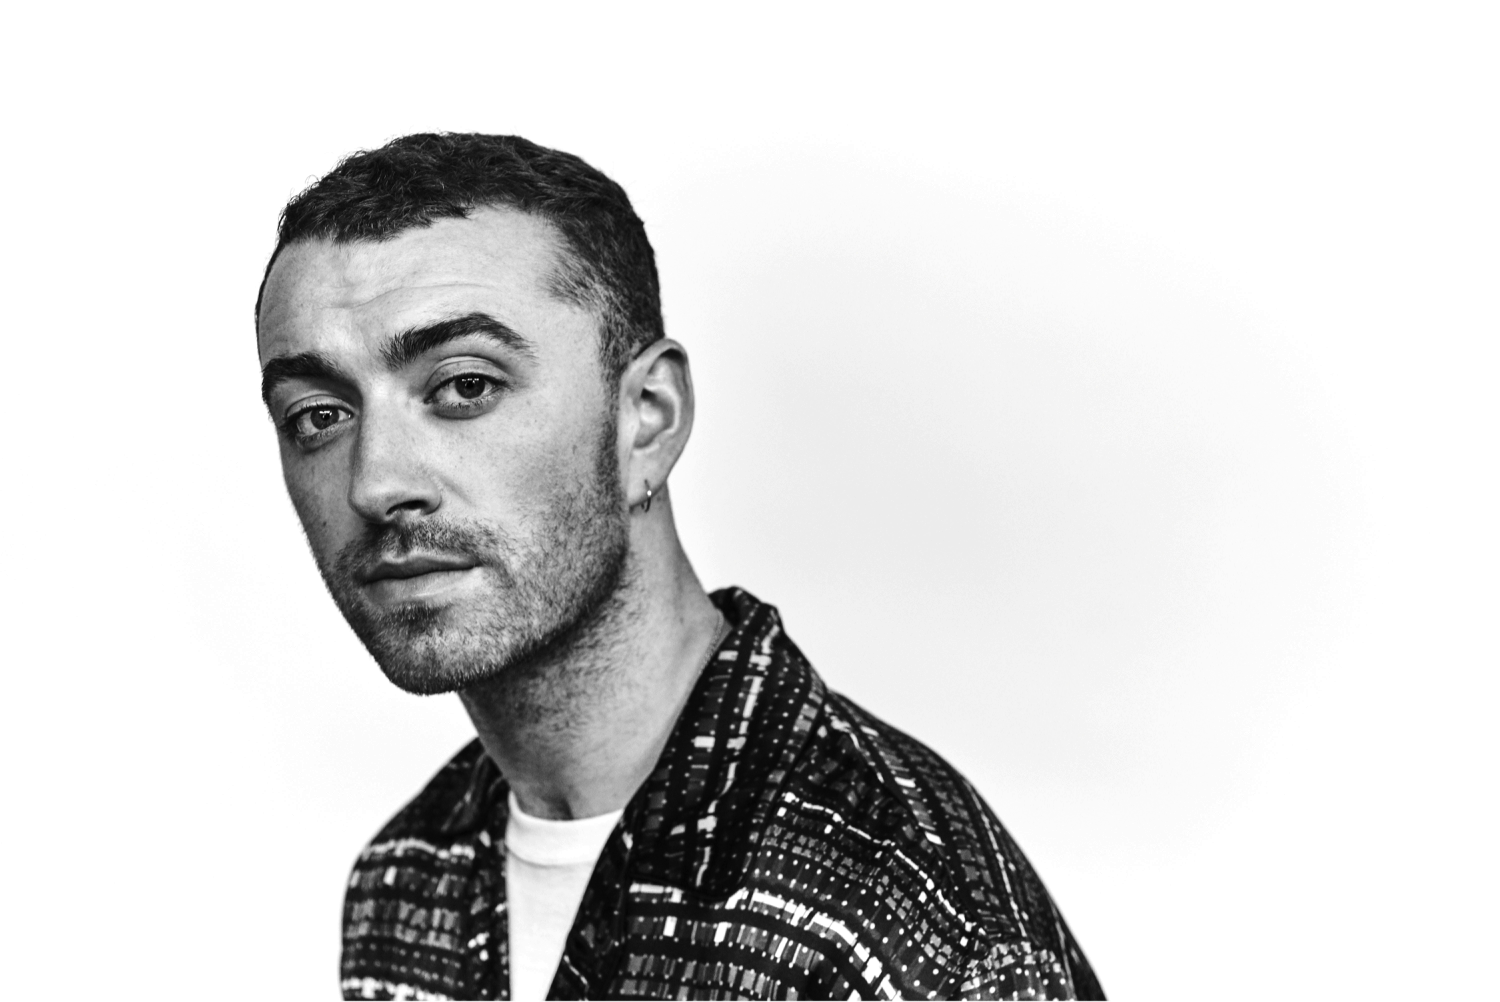 Sam Smith is an artist we love